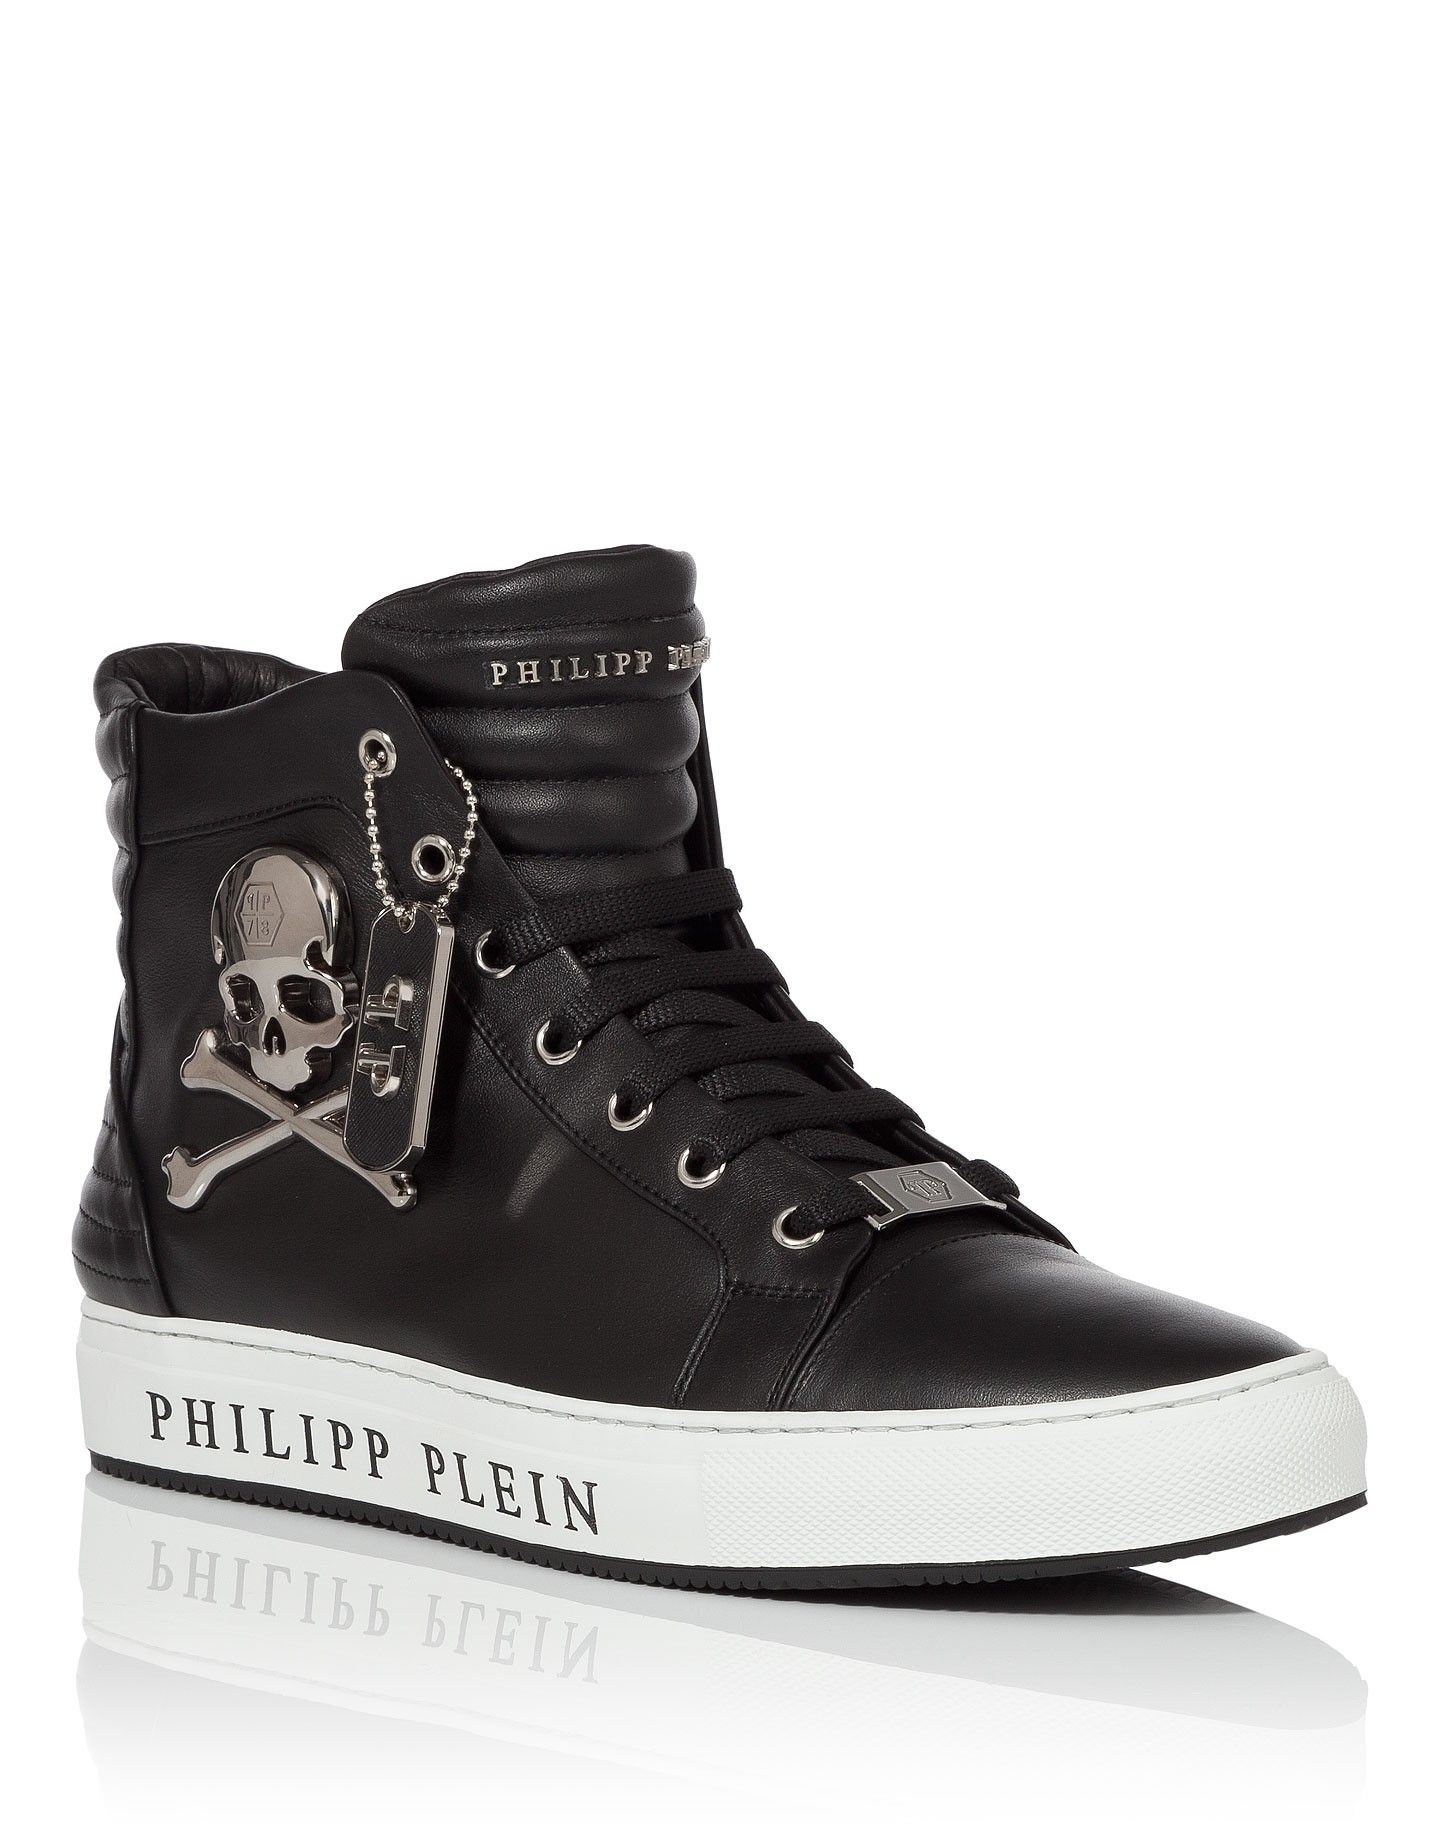 182b6cc04a PHILIPP PLEIN HIGH SNEAKER